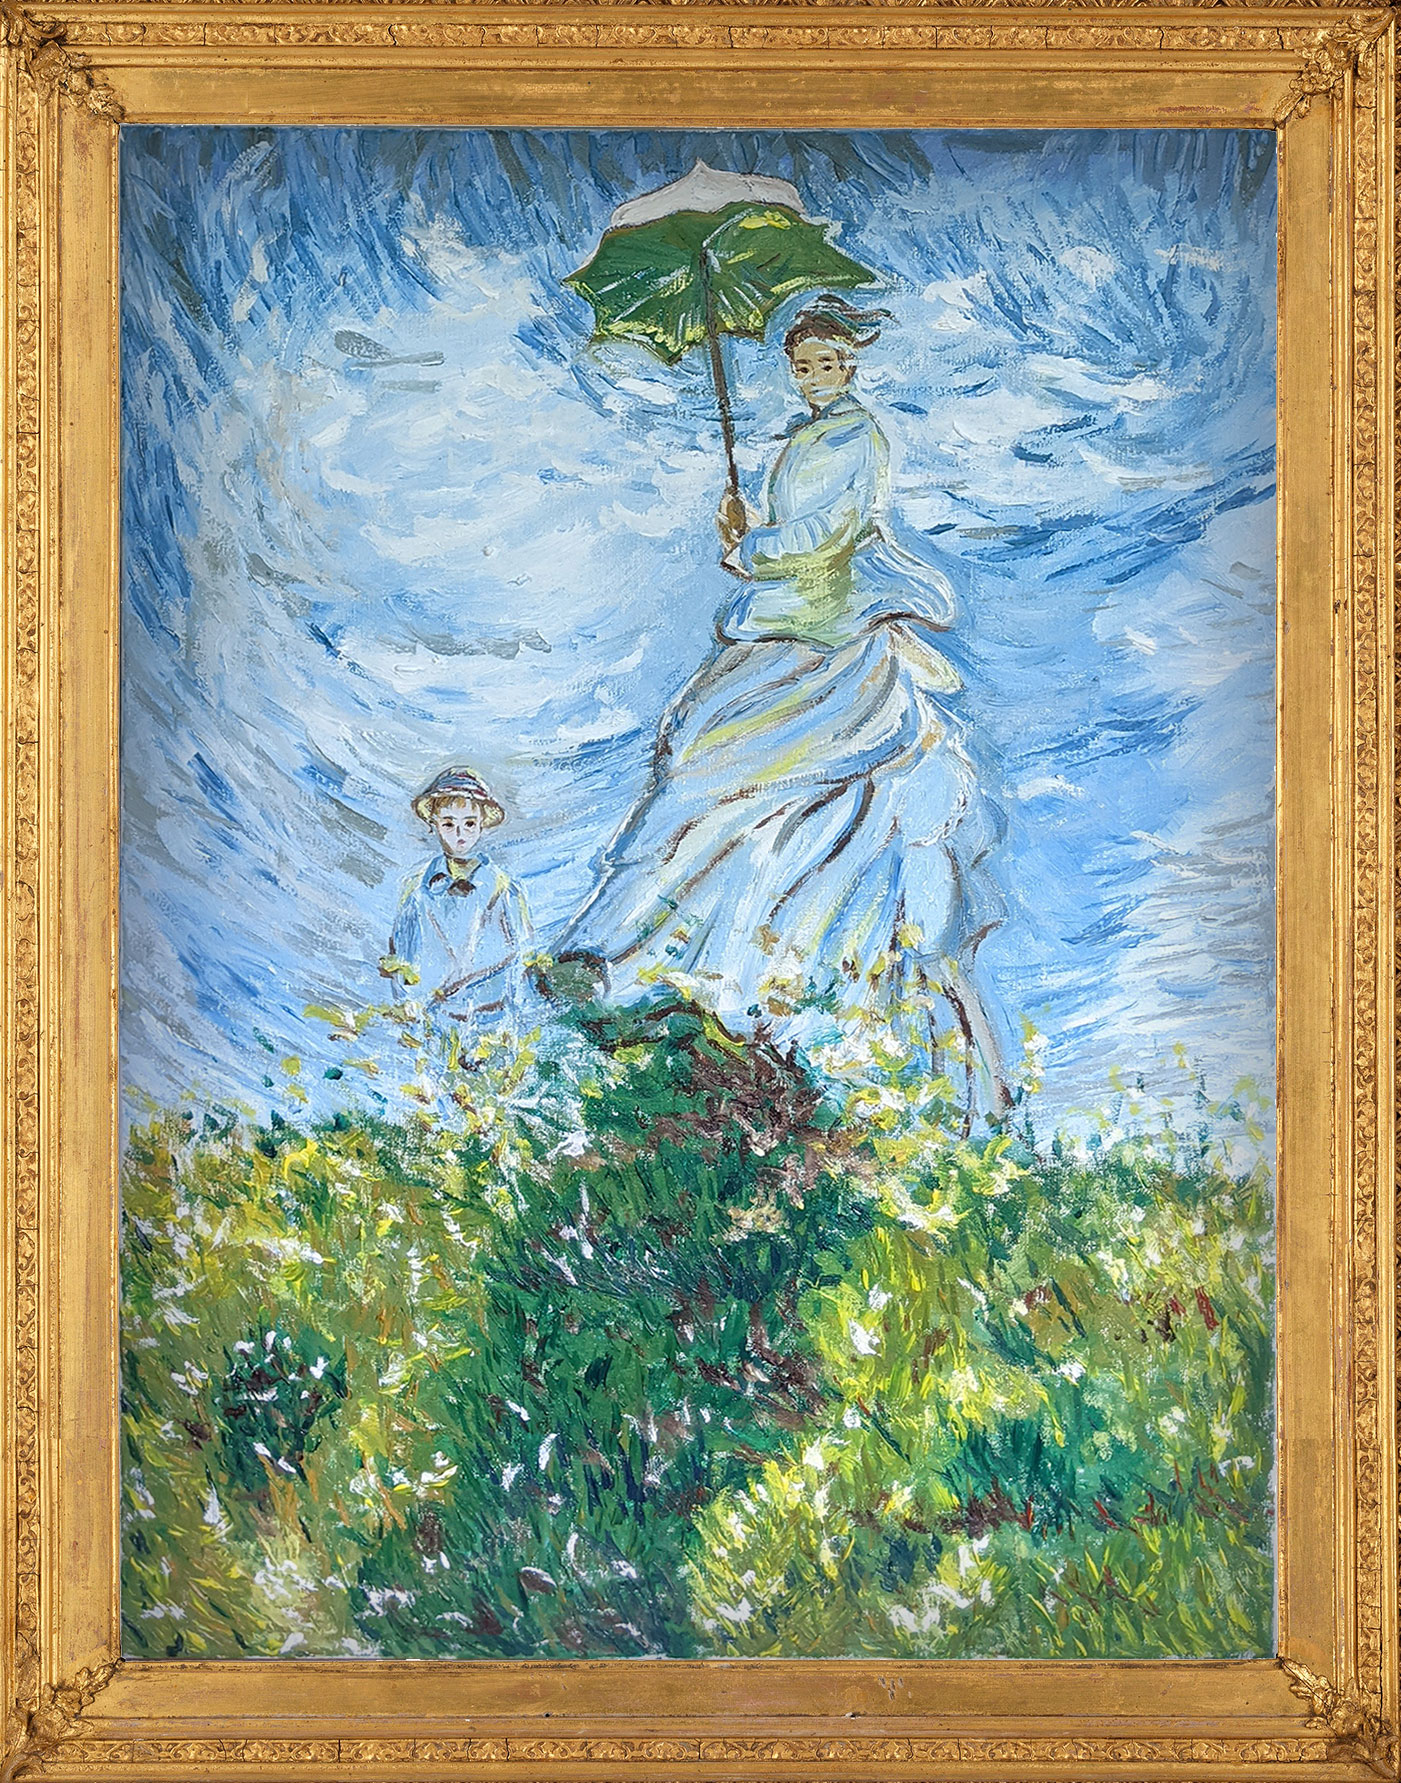 Woman with a Parasol – Madame Monet and Her Son Reproduction by Fan Stanbrough